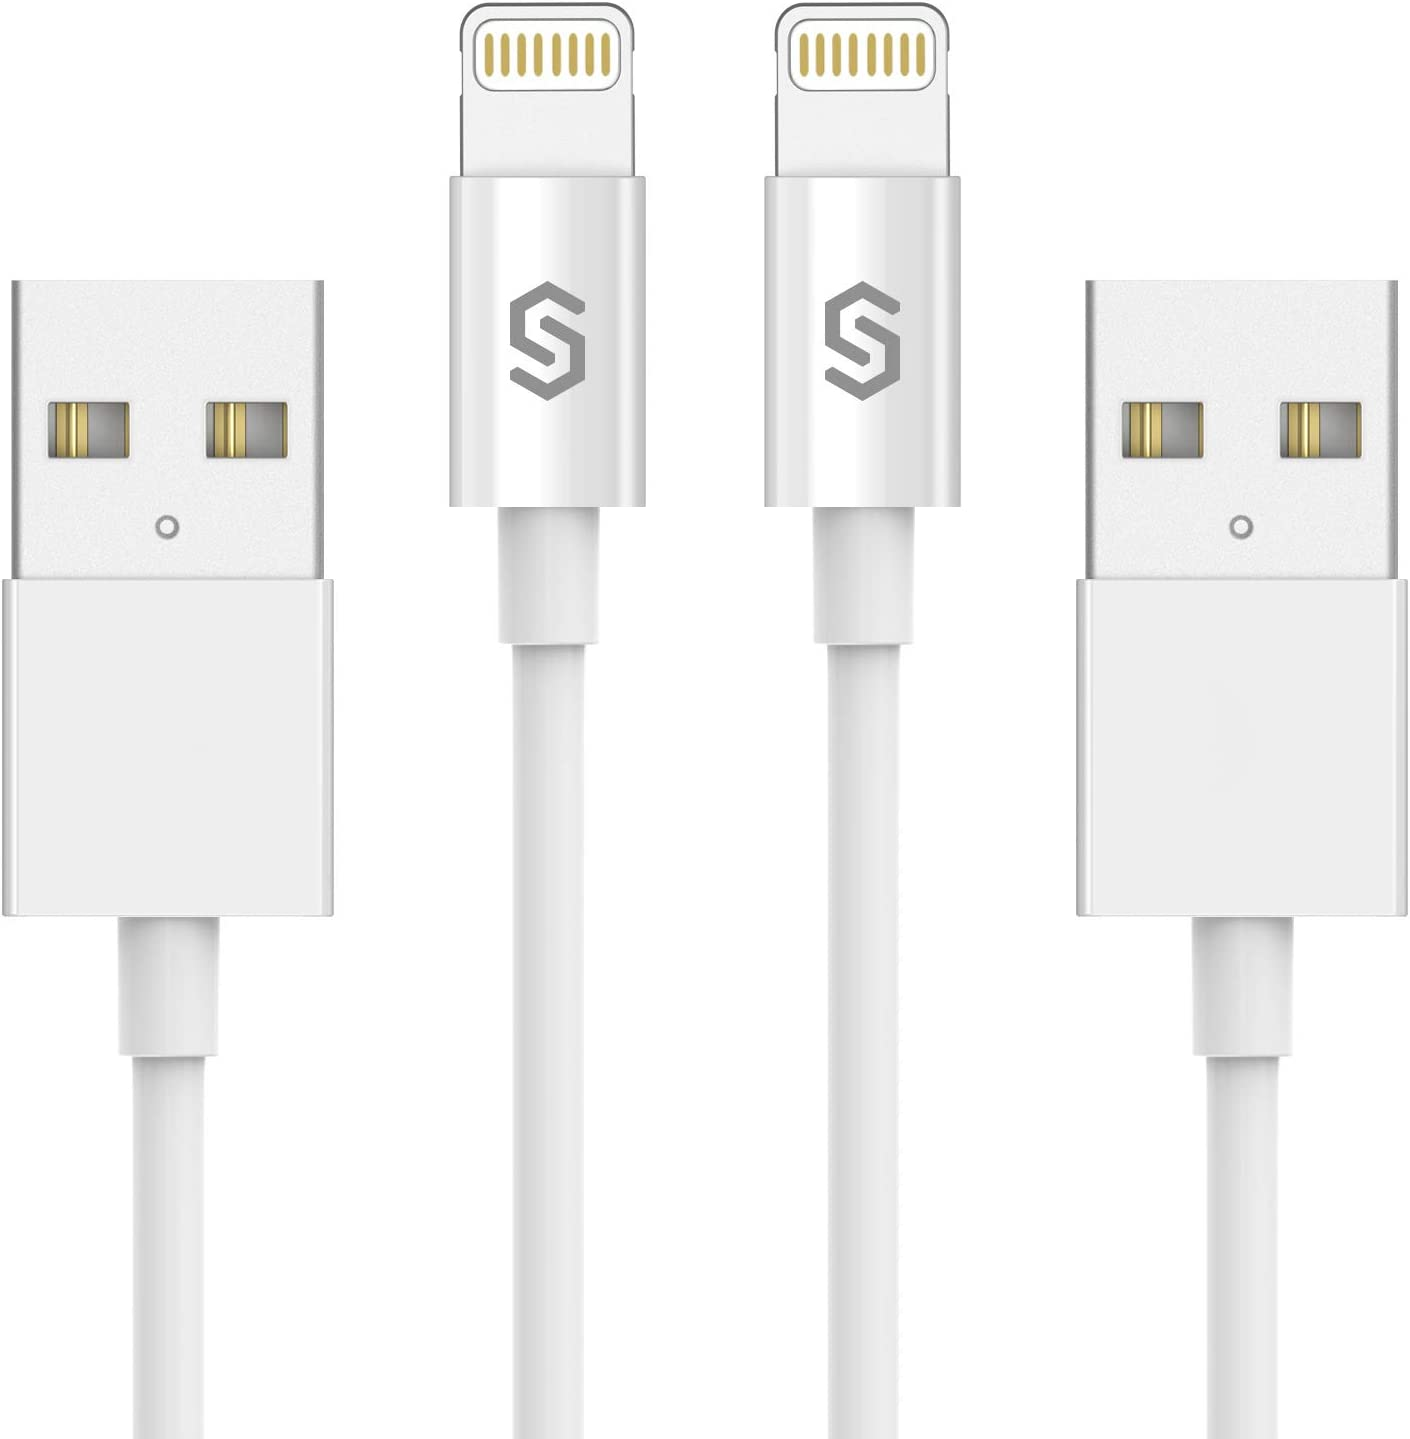 Syncwire iPhone Charger Lightning Cable - [Apple MFi Certified] 2-Pack 3.3ft for iPhone Xs, Xs Max, XR, X, 8, 8 Plus, 7, 7 Plus, 6s, 6s Plus, 6, 6 Plus, SE, 5s, 5c, 5, iPad Mini/Air / Pro – White